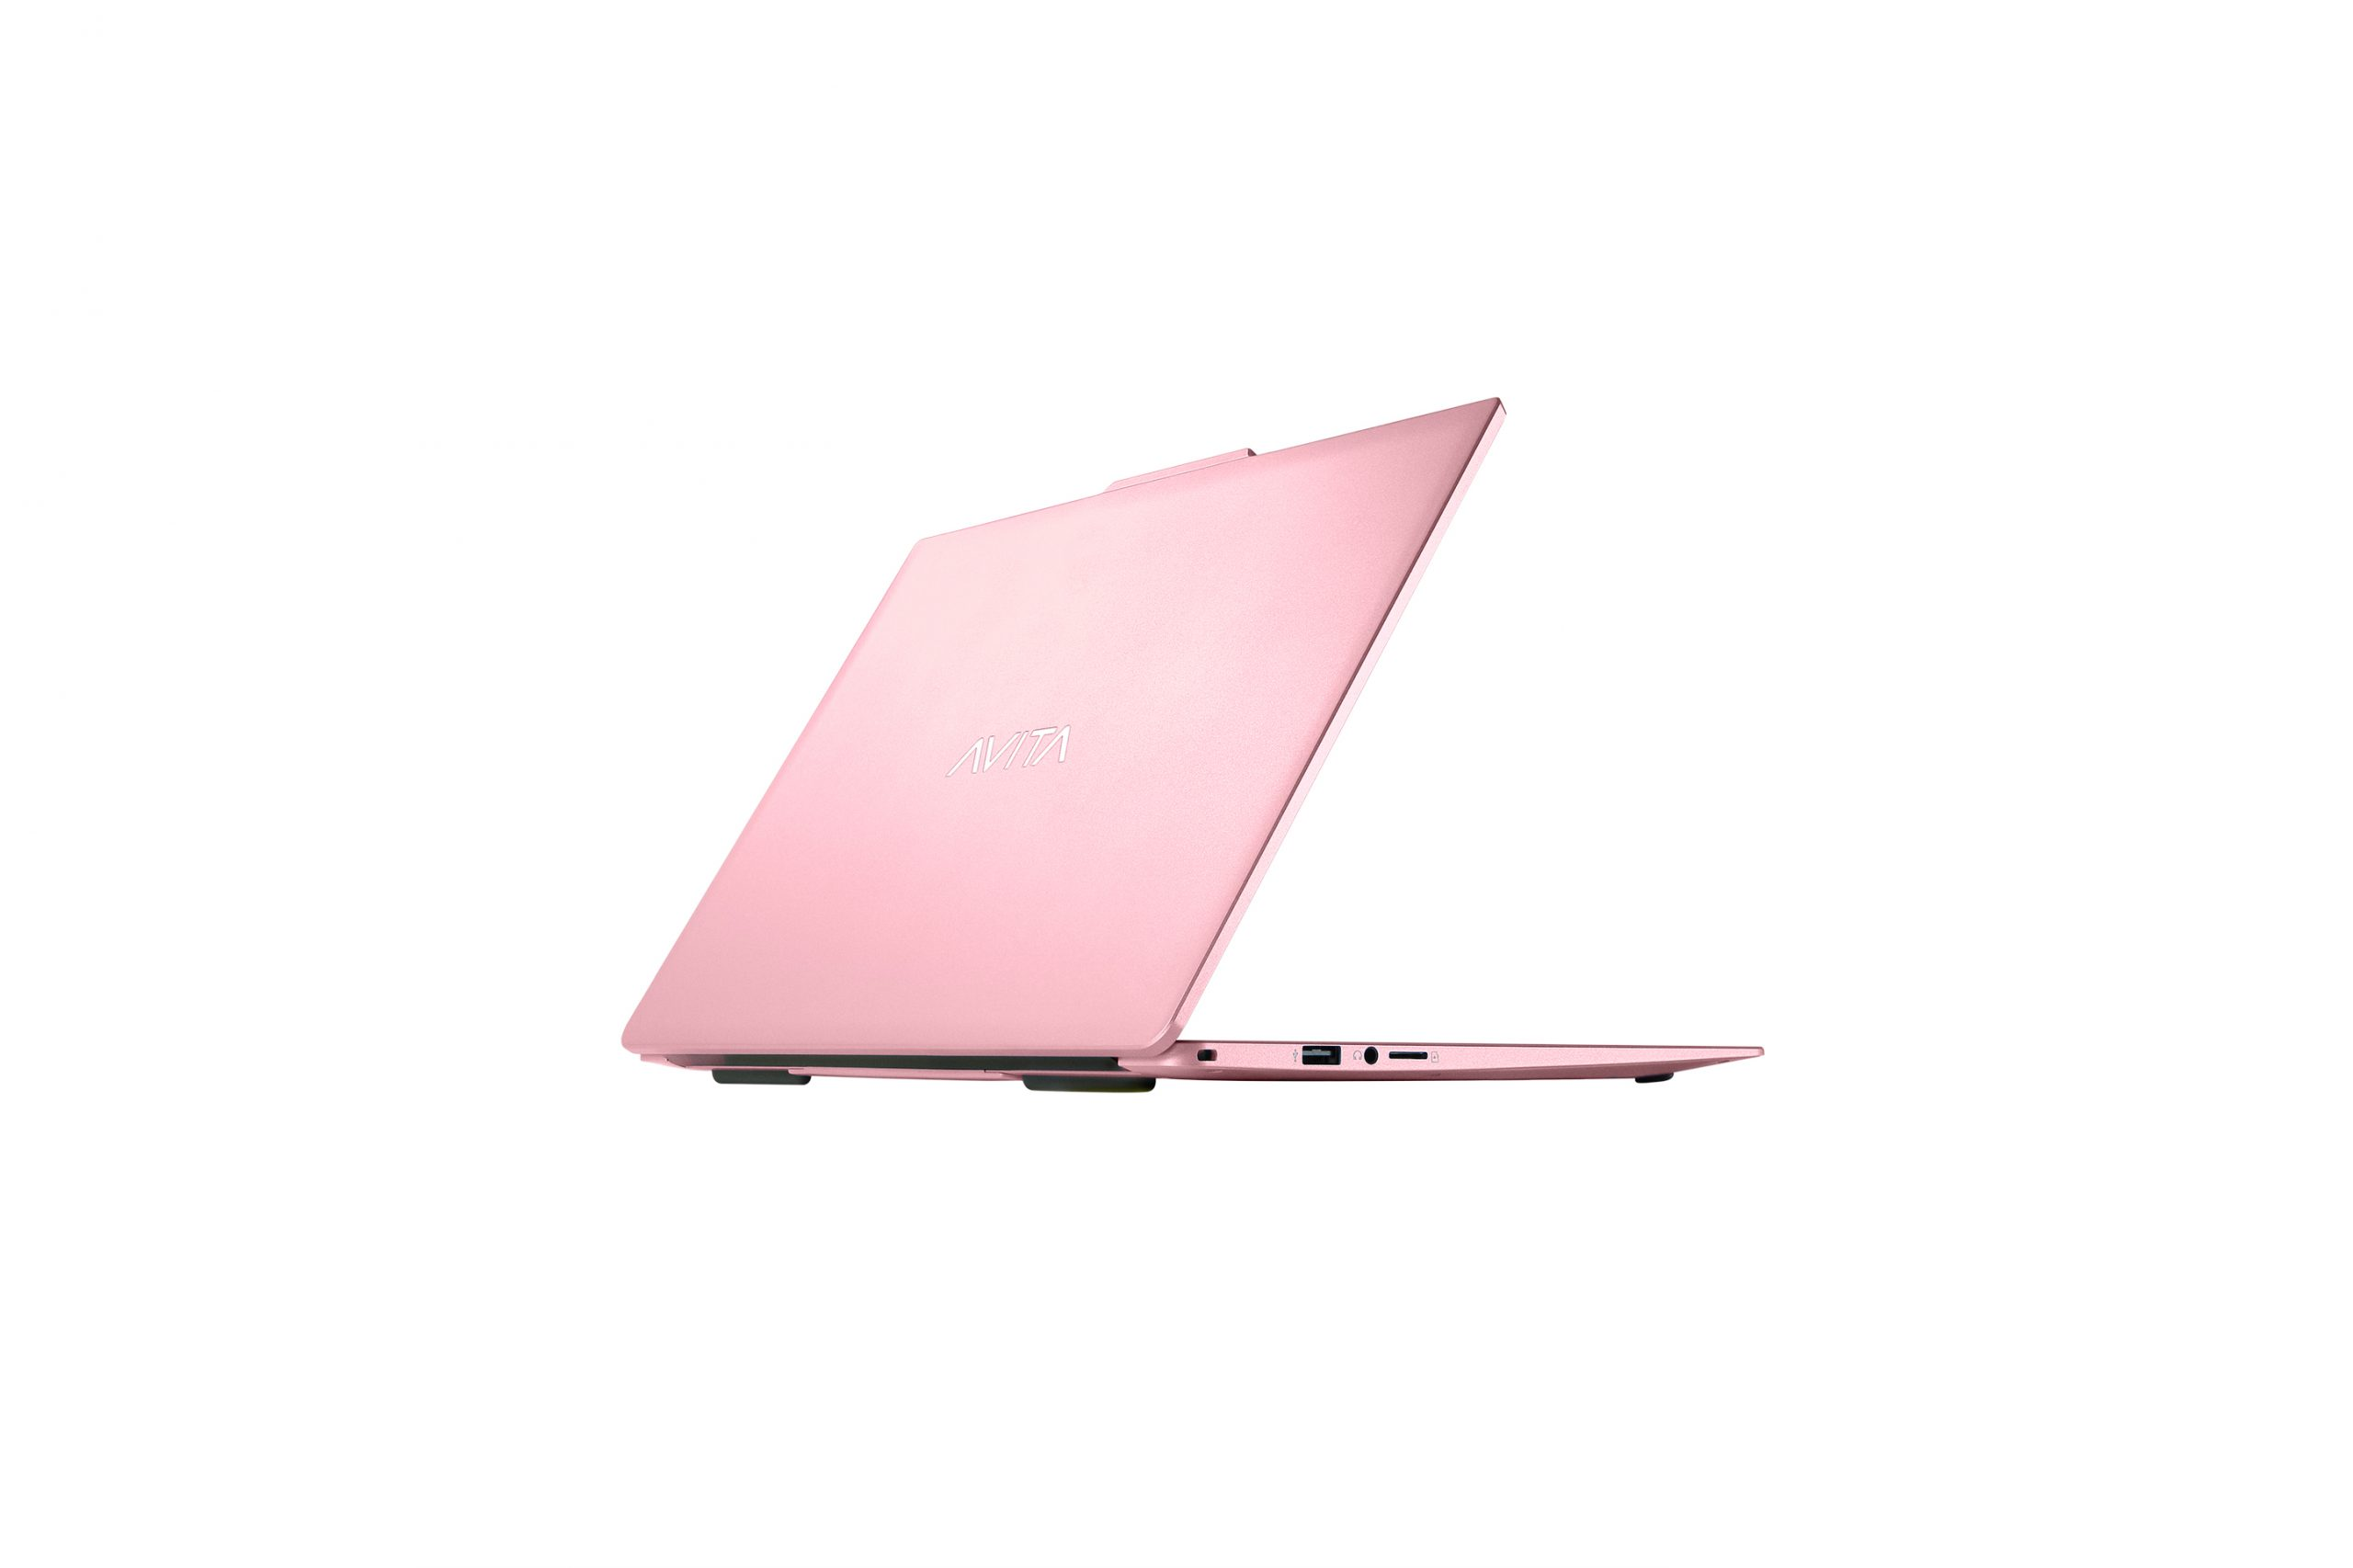 https://t2qwifi.com/wp-content/uploads/2020/07/avita_laptop_2020_angle2_0024_high_bloosom-pink-scaled.jpg